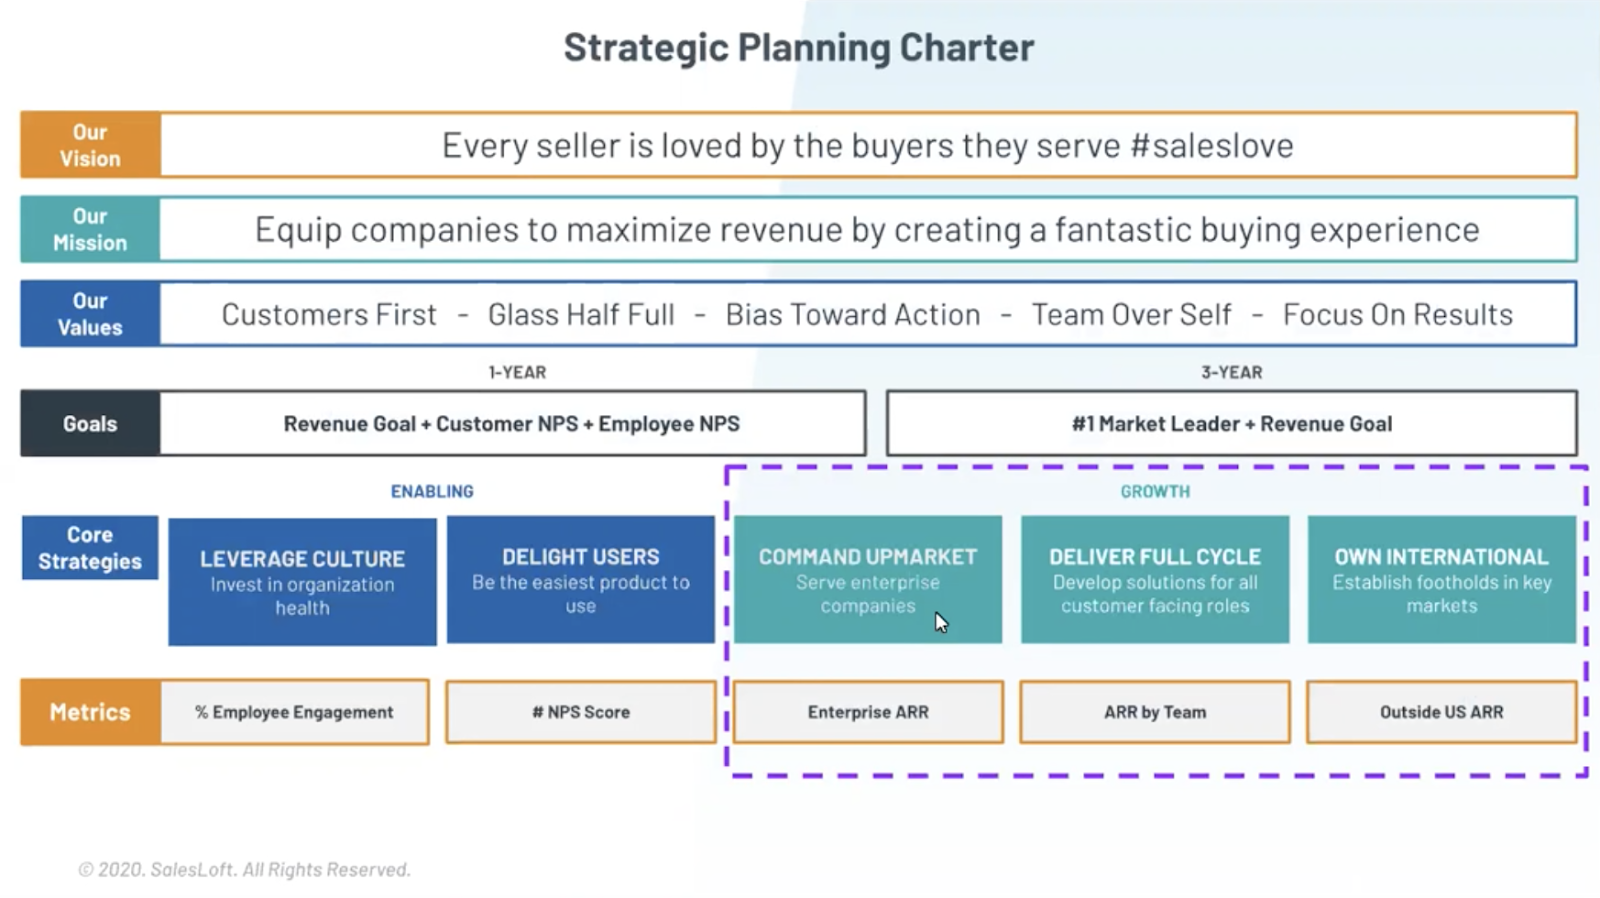 Outline a strategic planning charter to help drive company strategy with product marketing.